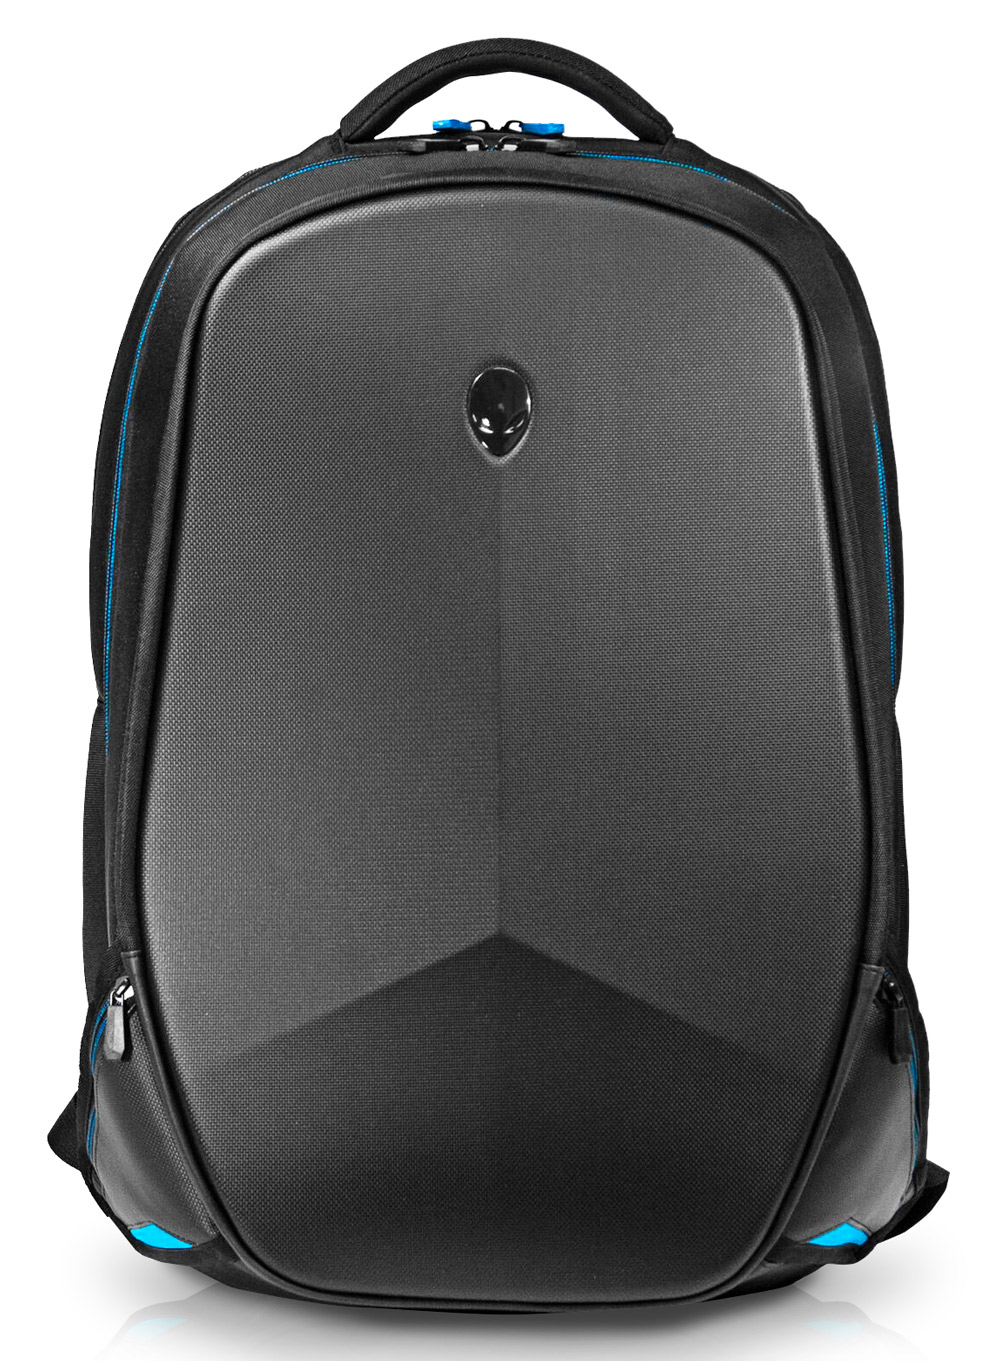 ALIENWARE 17 R5 8TH GEN CORE i7 QHD GAMING LAPTOP WITH 512GB SSD AND 32GB RAM